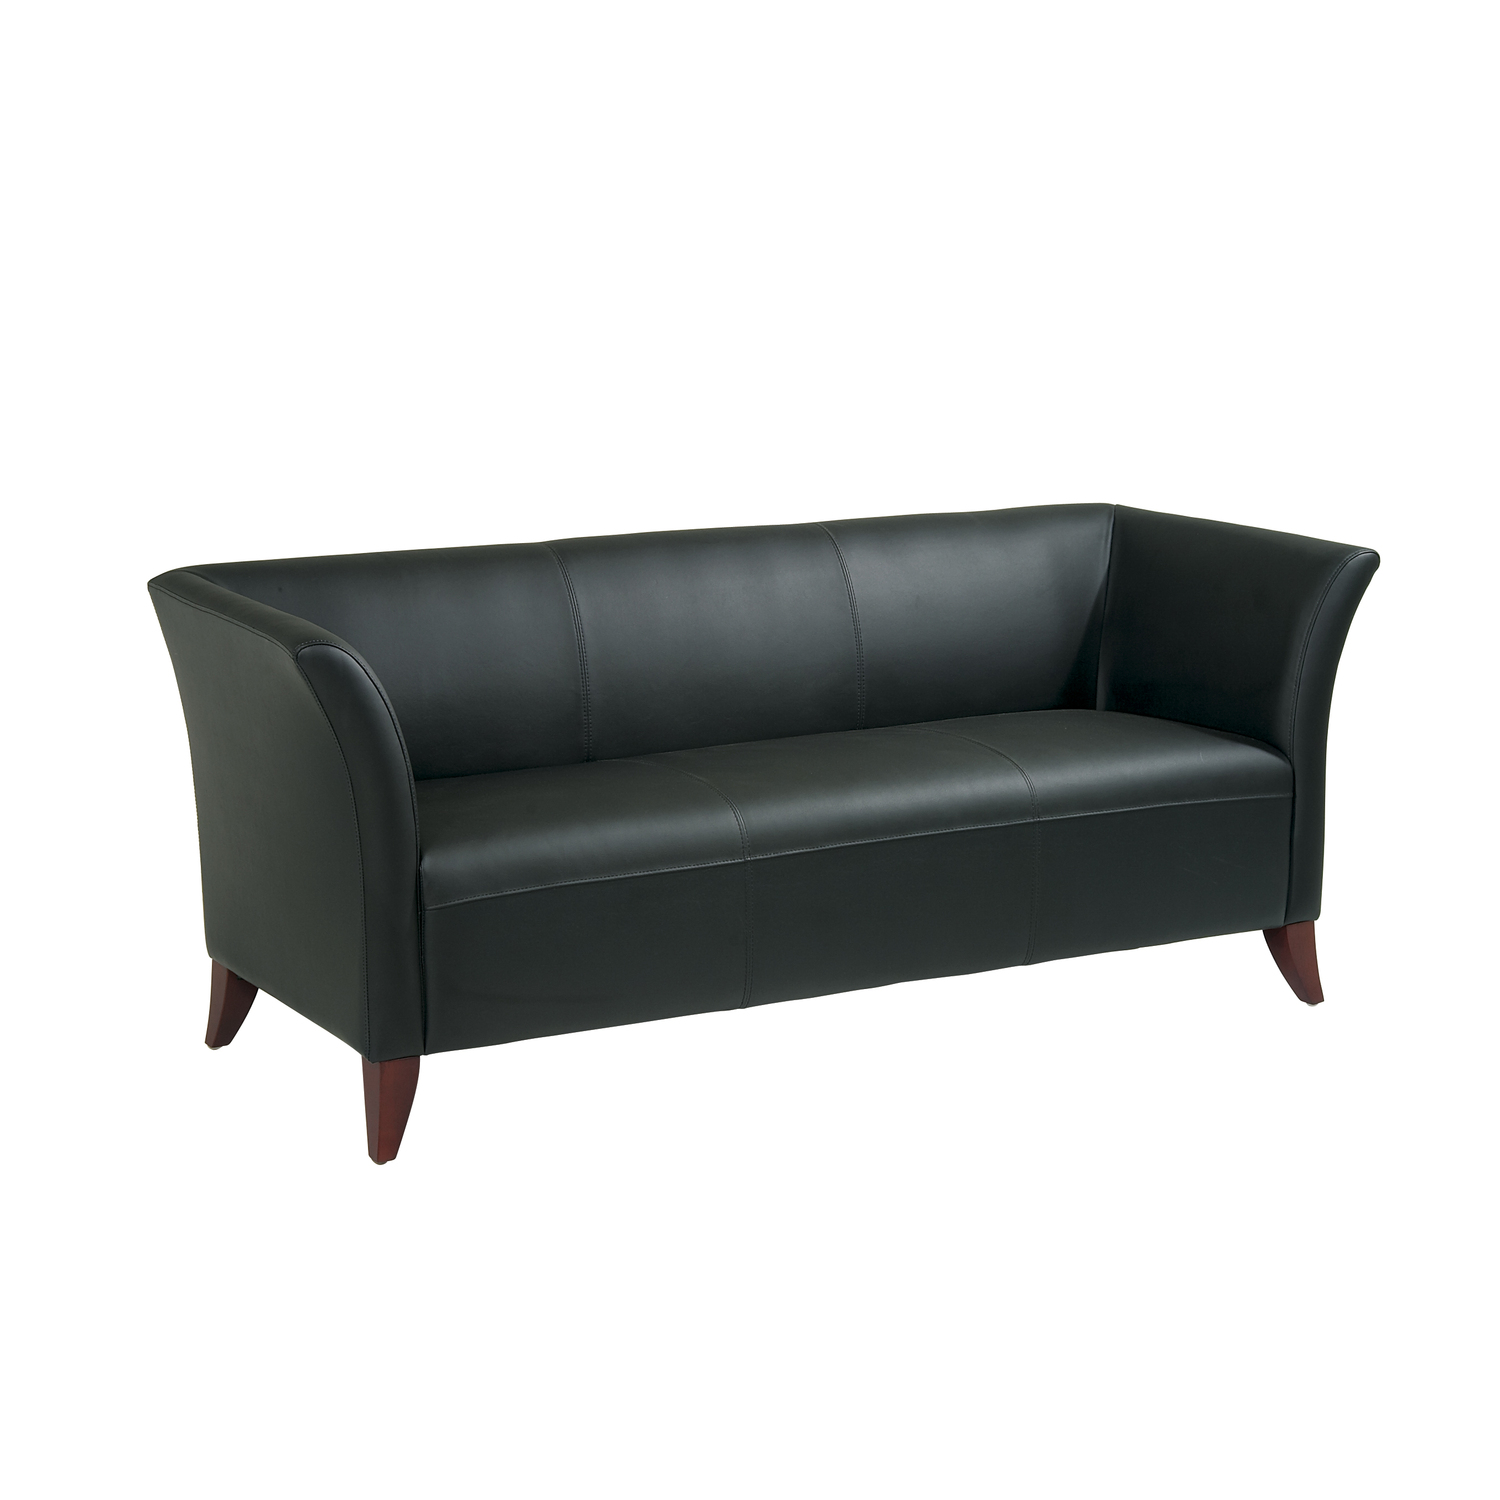 Furniture Home Goods Appliances Athletic Gear Fitness  : sl1573officestarleathersofa from www.ojcommerce.com size 2711 x 1800 jpeg 937kB